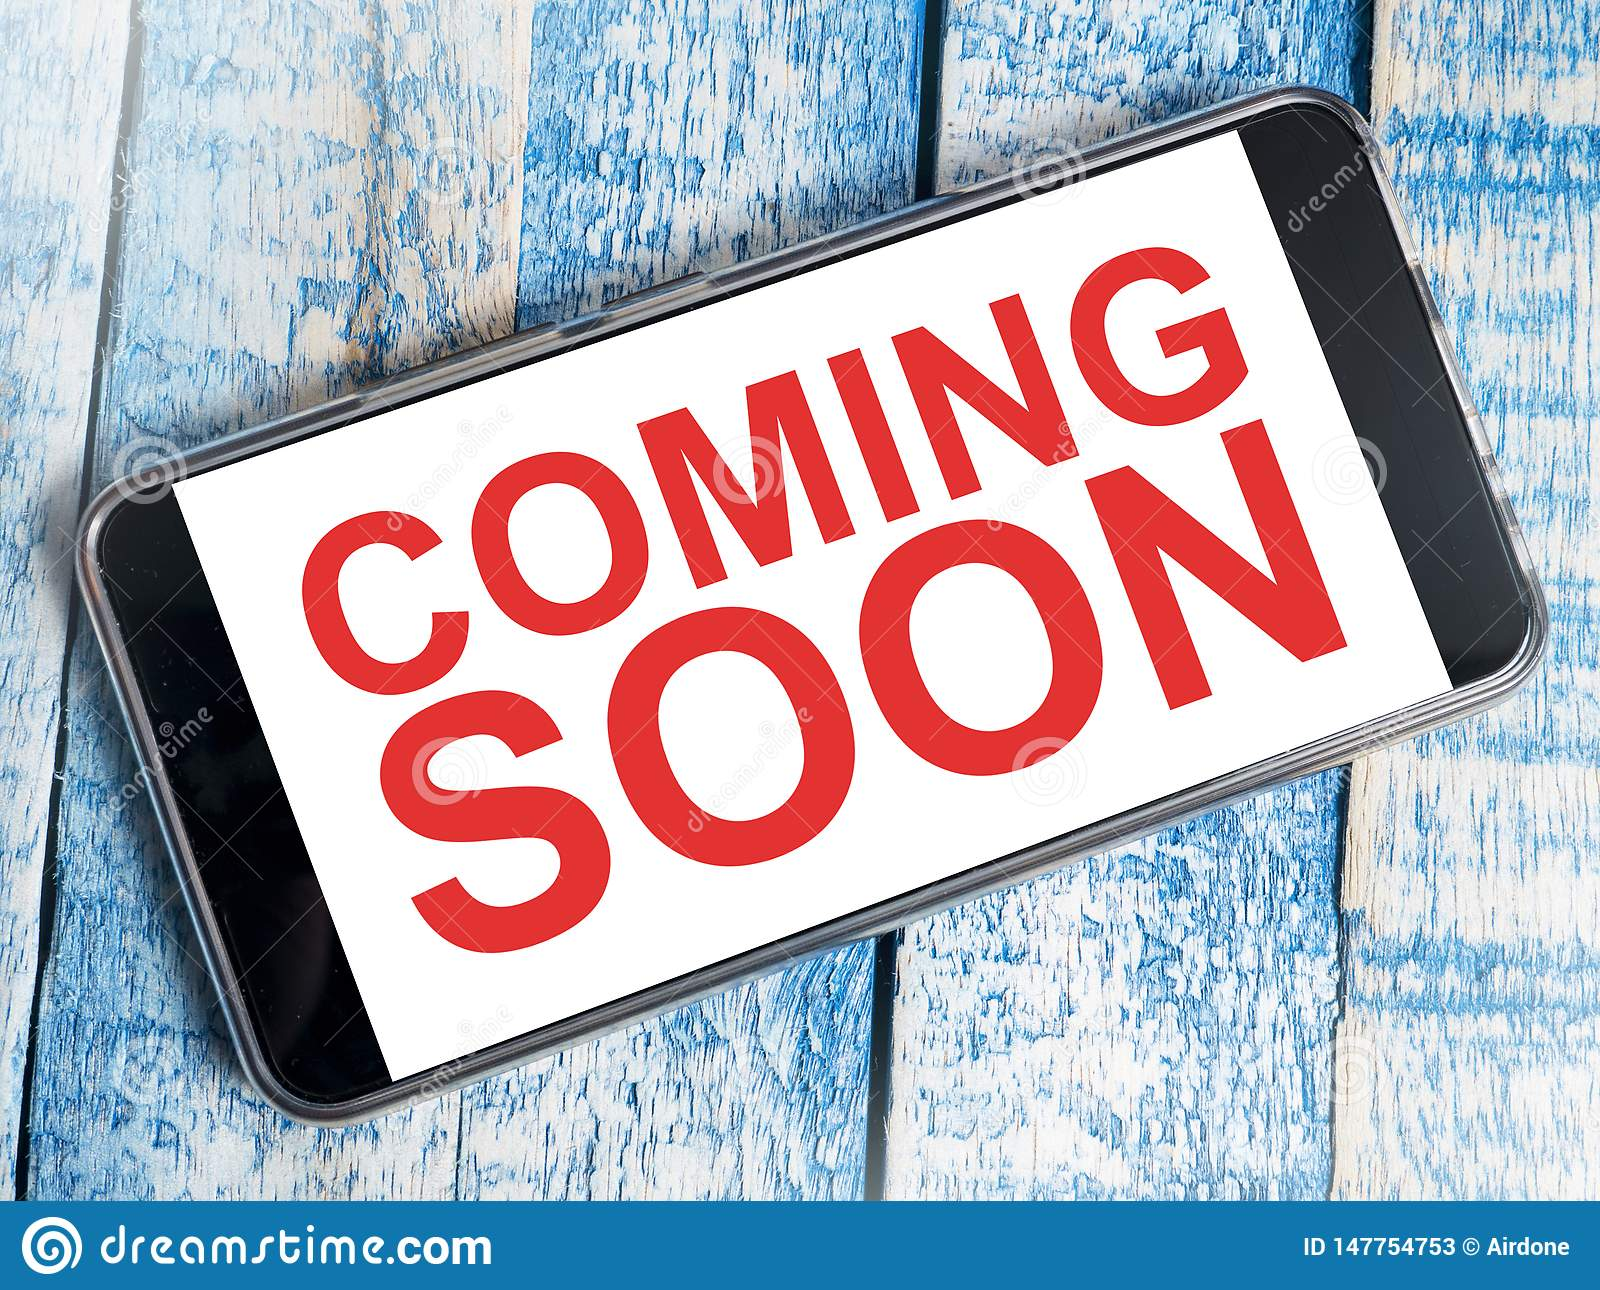 Coming Soon Words Typography Concept Stock Image Image Of Text Product 147754753